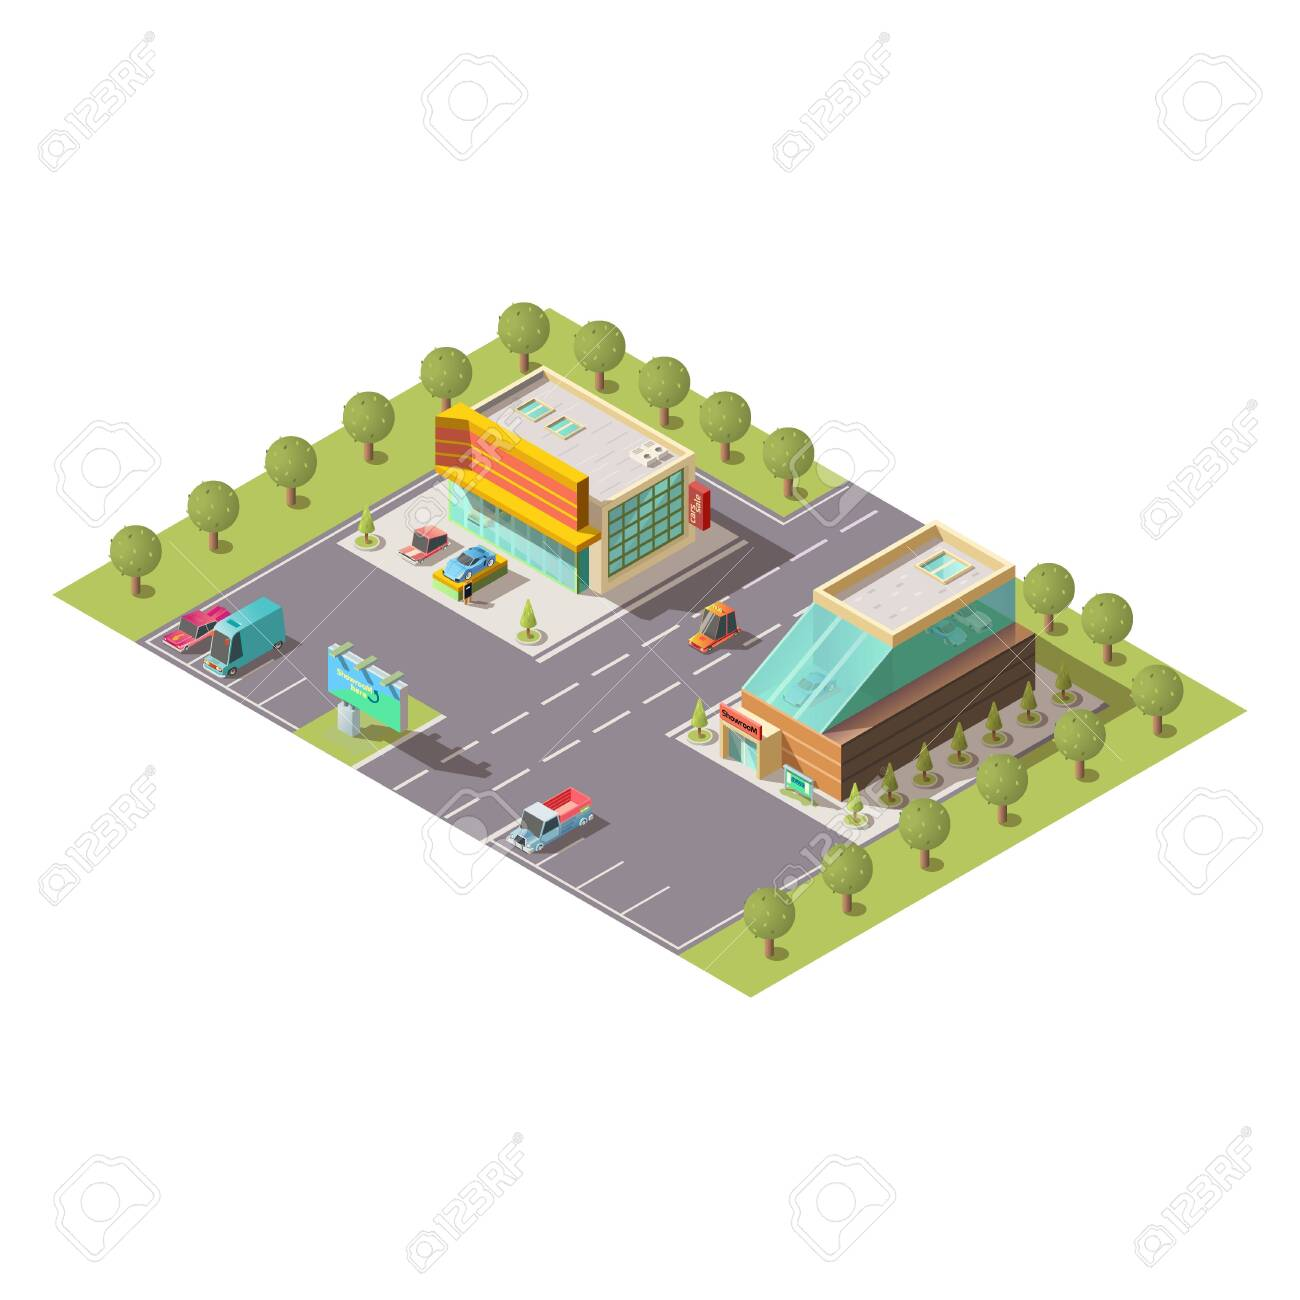 New car selling salon, passenger vehicle sale dealer showroom building exterior and parking isolated isometric vector. Modern city architecture, business real estate, cartography element illustration - 137856427